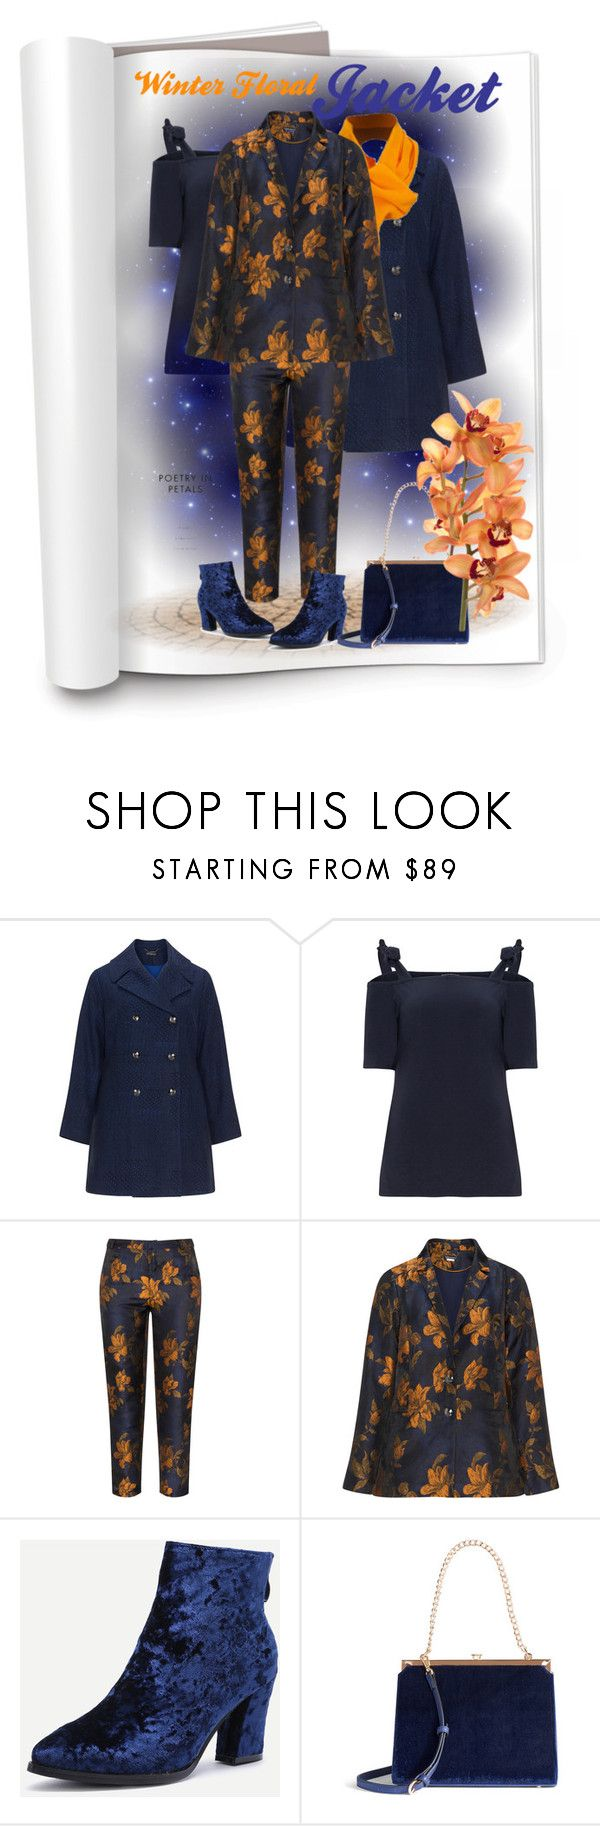 """""""Winter Floral Jackets"""" by vanity-simons ❤ liked on Polyvore featuring Manon Baptiste and LC Lauren Conrad"""